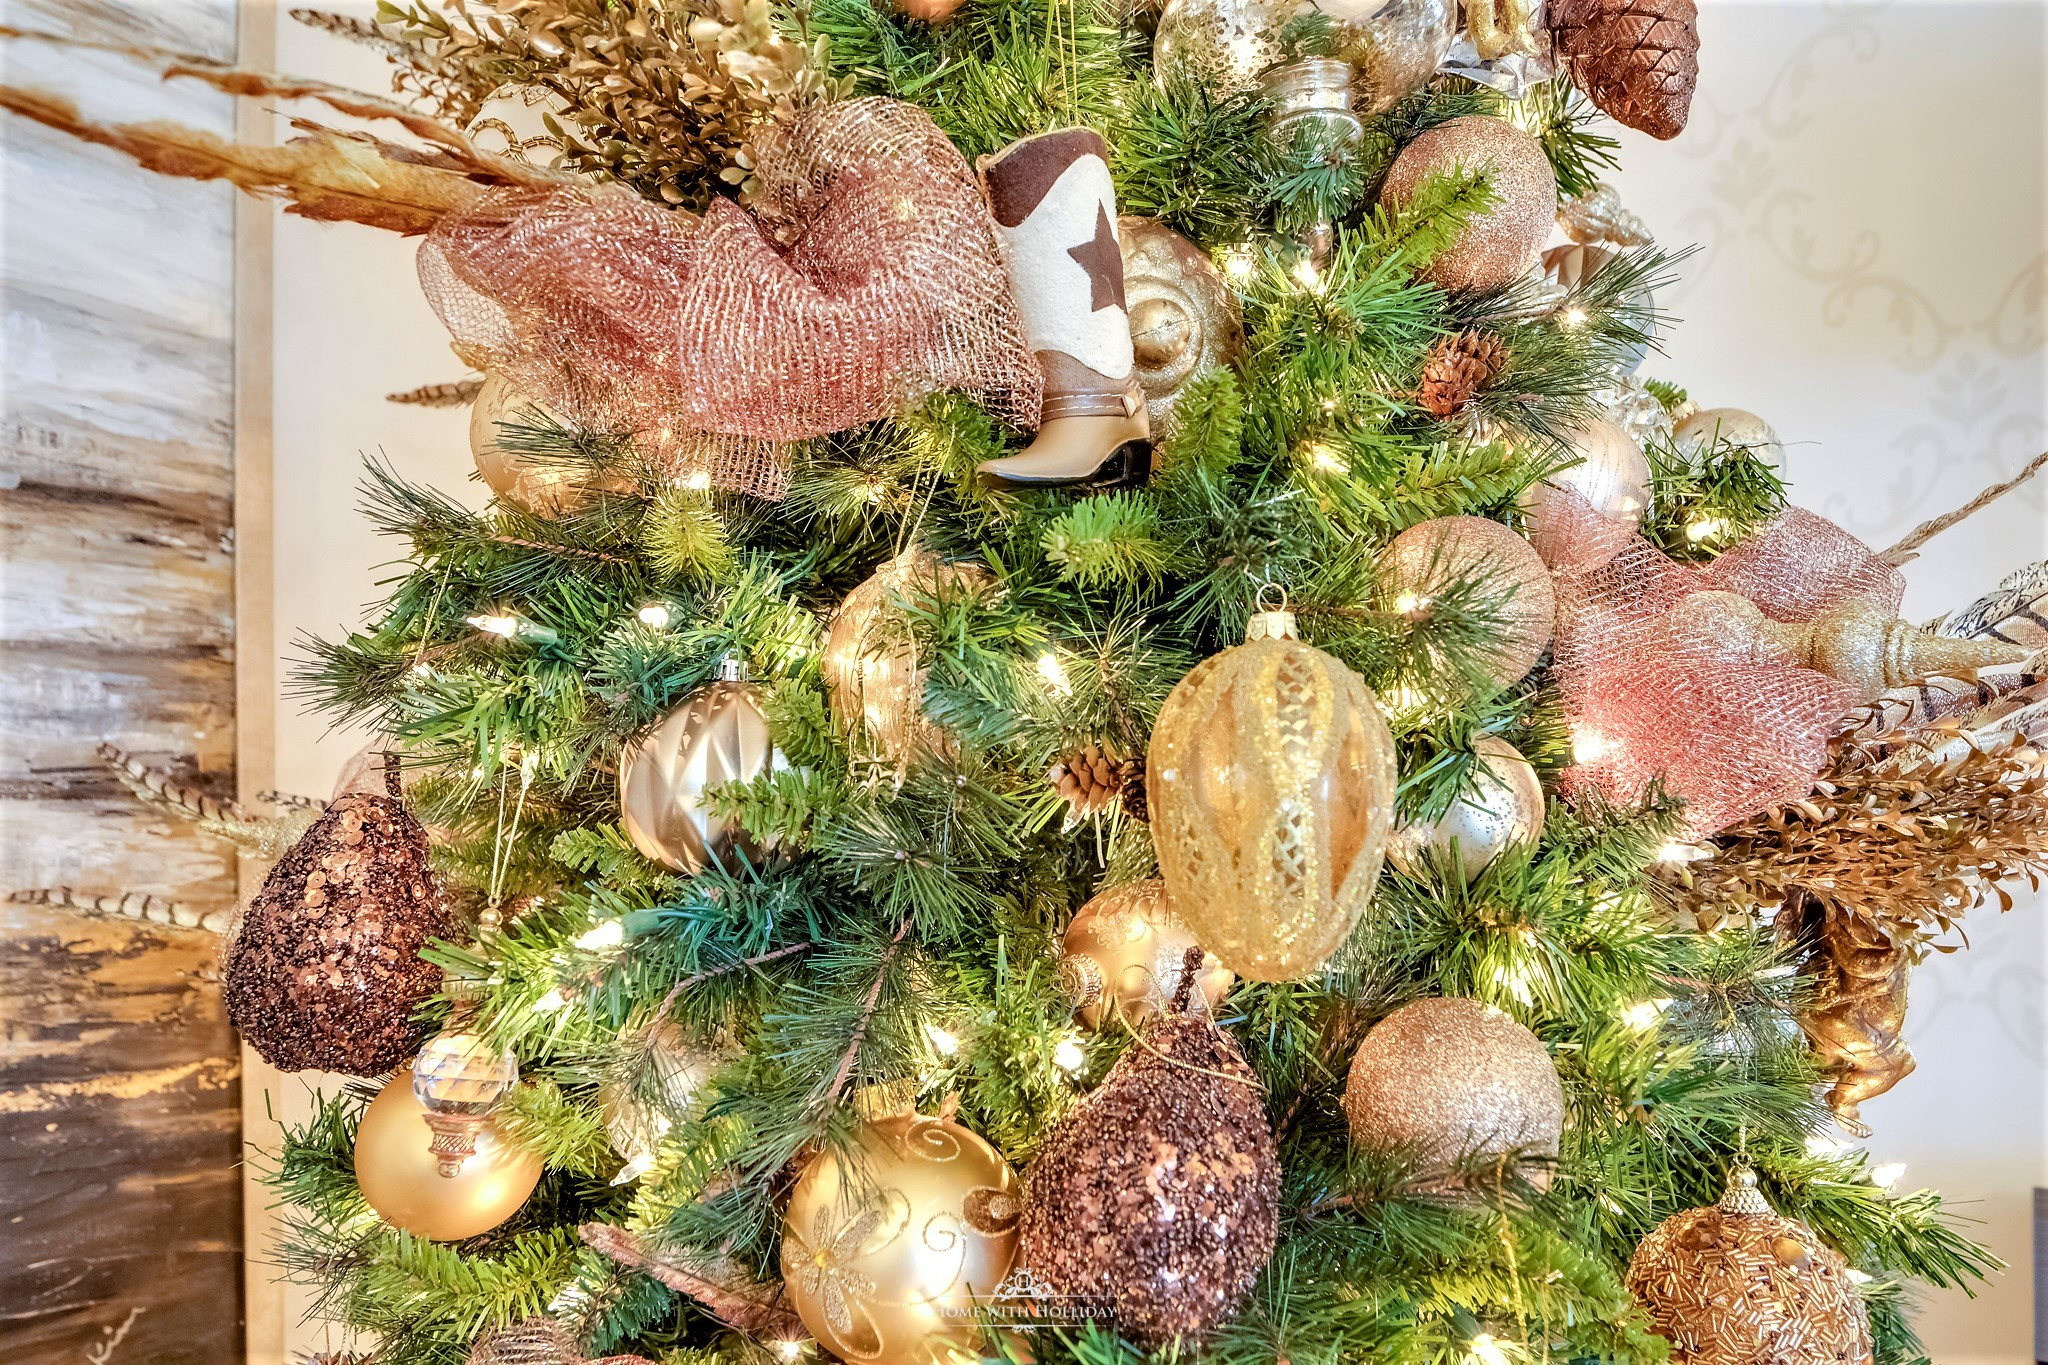 Changes to my Mixed Metallic Christmas Tree - Home with Holliday